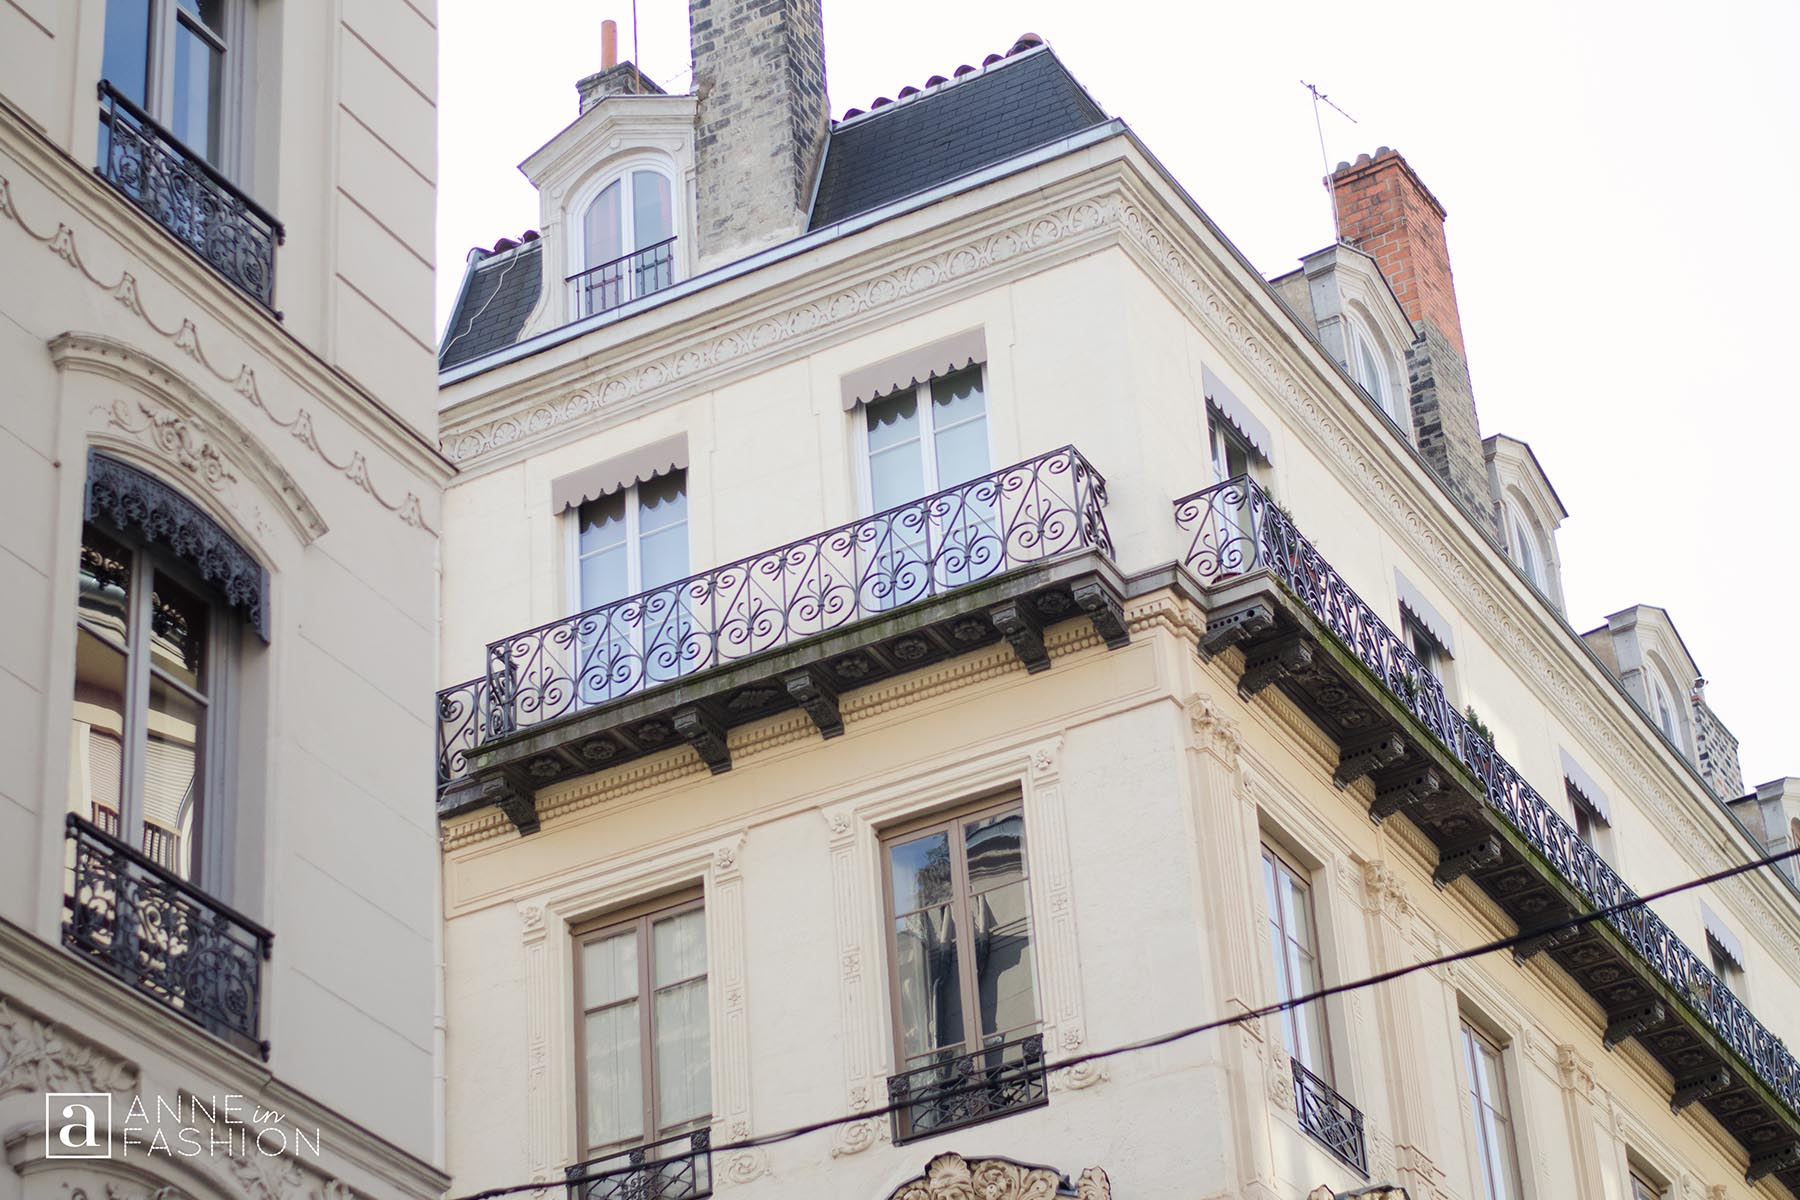 Windows and balconies of Apartments Lyon France